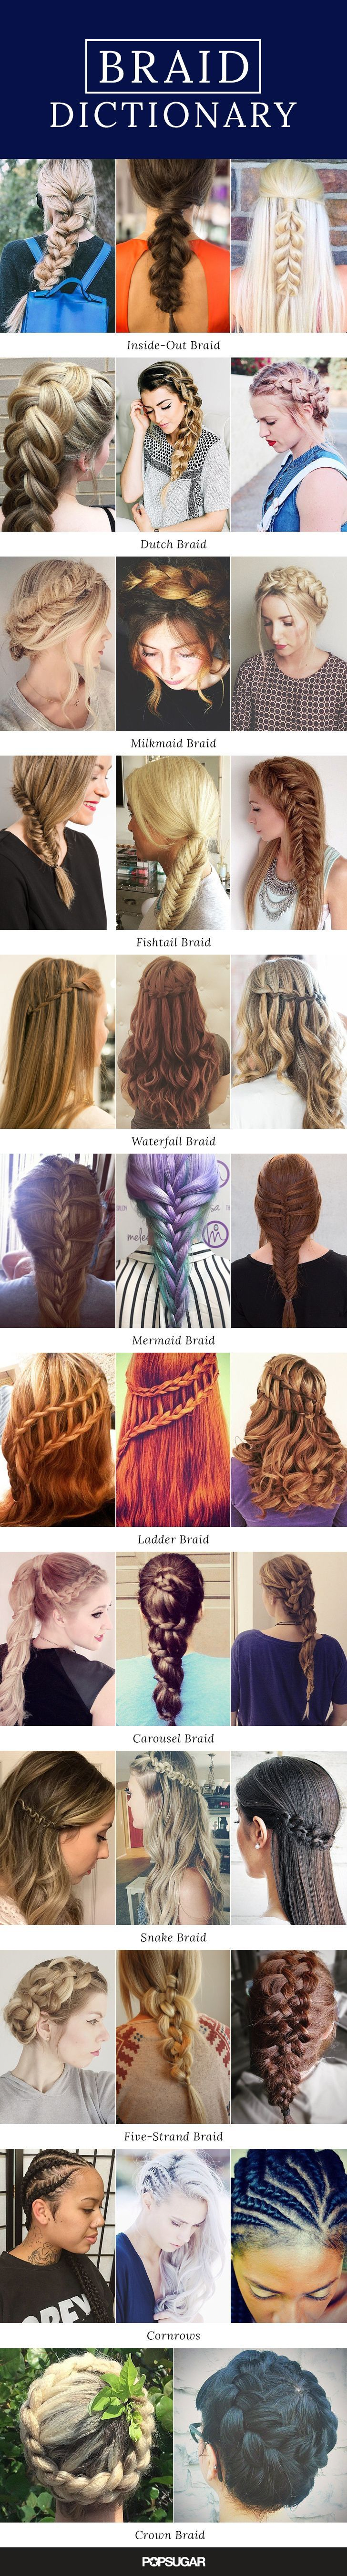 There are so many different braids out there — how many can you create? Everyone wants to master the new trendy style before a new one is invented. So, we've broken down every kind of plait (with gorgeous real-girl pictures and tutorials) for hairstyle inspiration. See photos of inside-out braids, dutch braids, milkmaid braids, fishtail braids, waterfall braids, mermaid braids, ladder braids, carousel braids, snake braids, five-strand braids, cornrows, and crown braids.